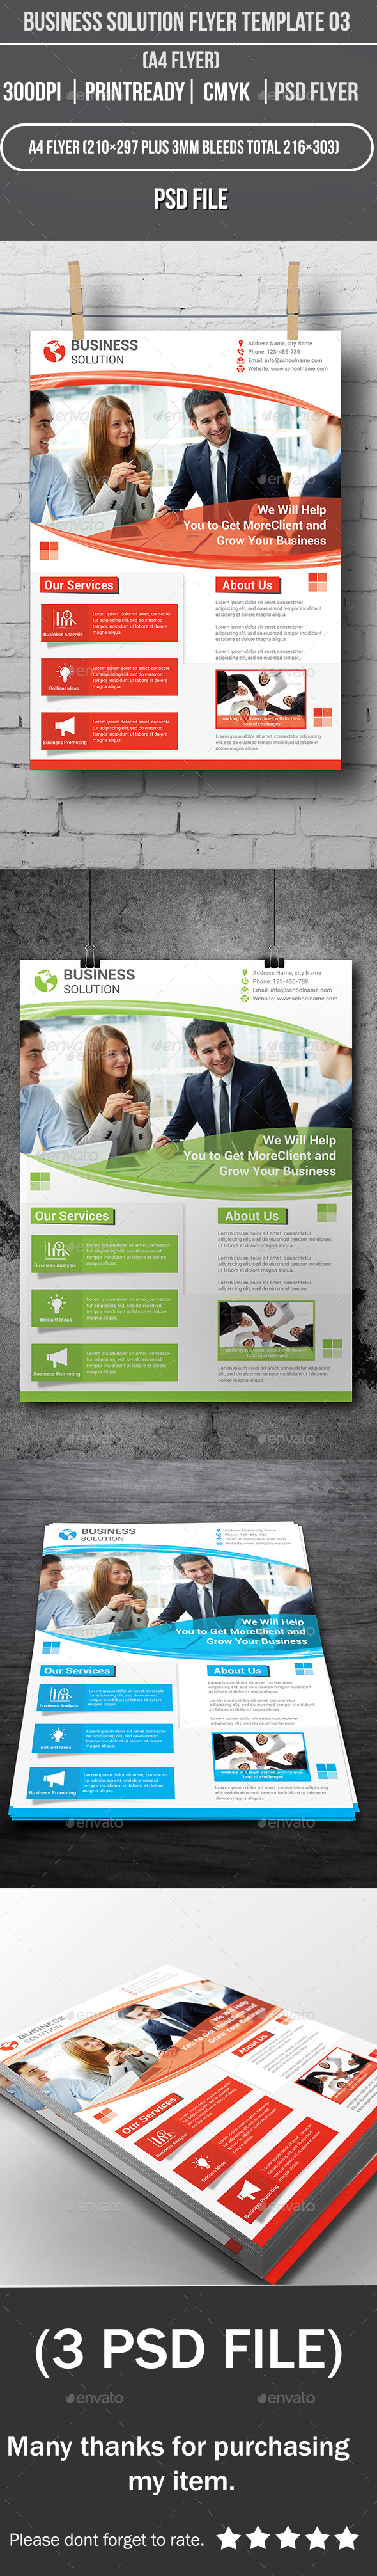 GraphicRiver Business Solution Flyer Template 03 9253670